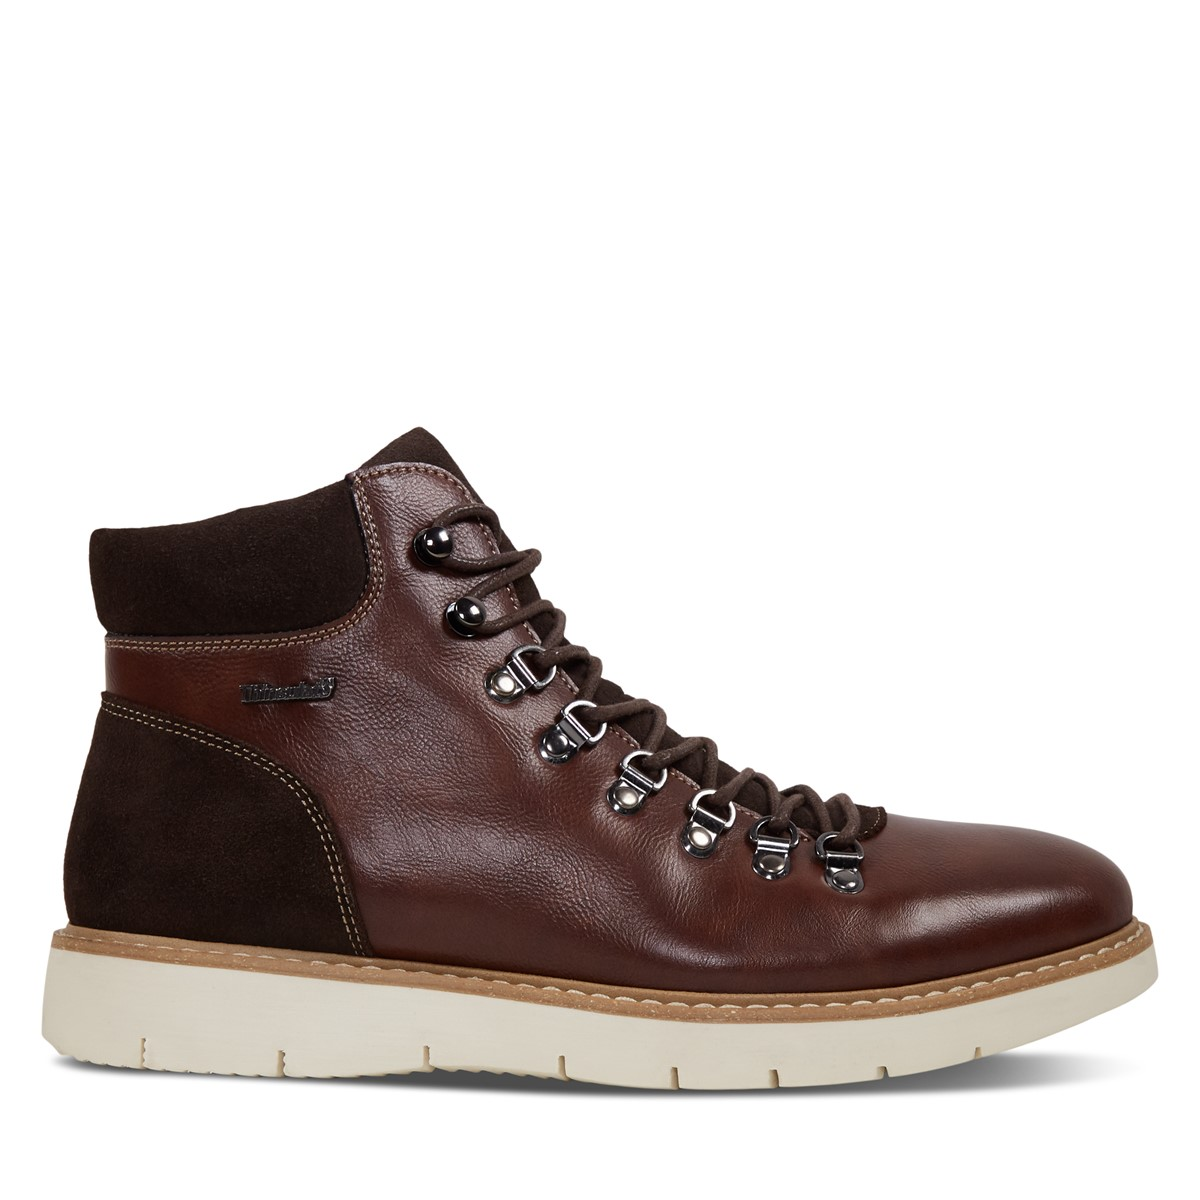 Men's Liam Lace-up Boots in Brown